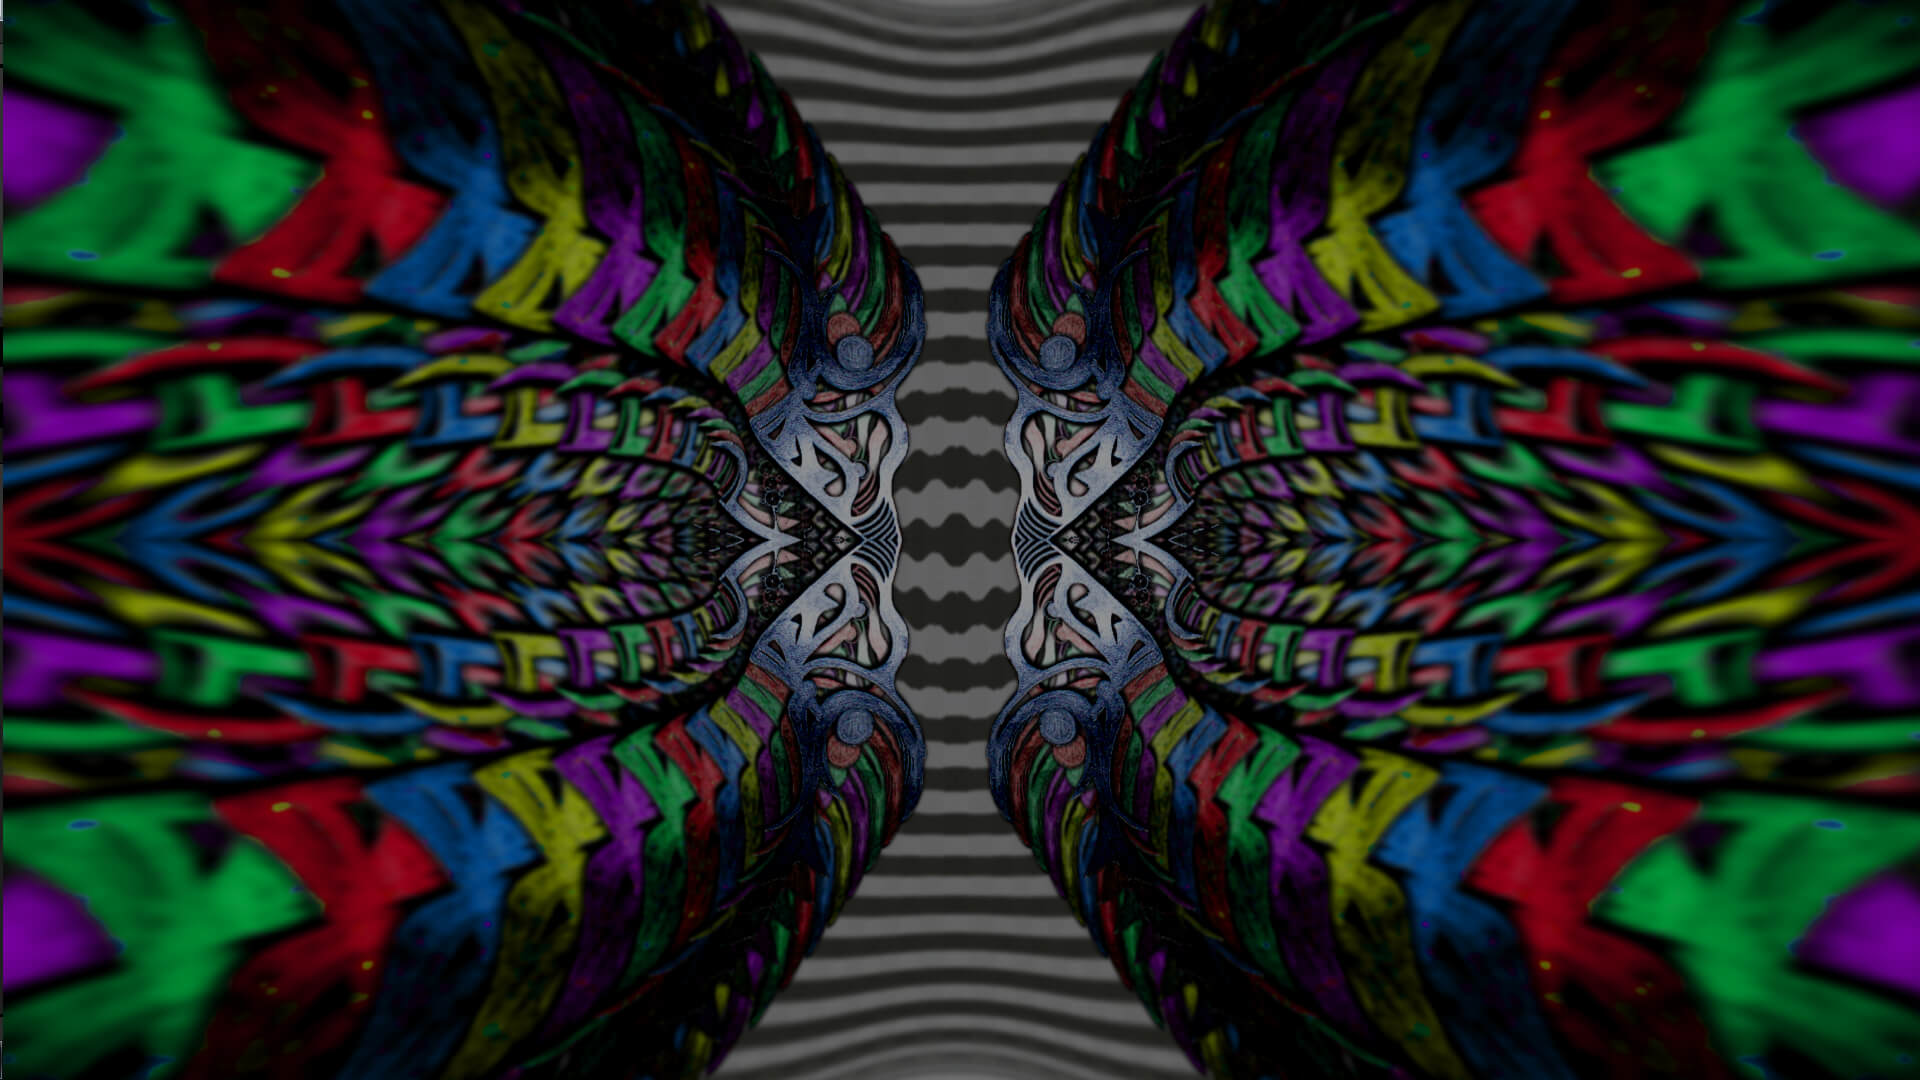 Ripples of your laugh  - digital abstract art by Mitek